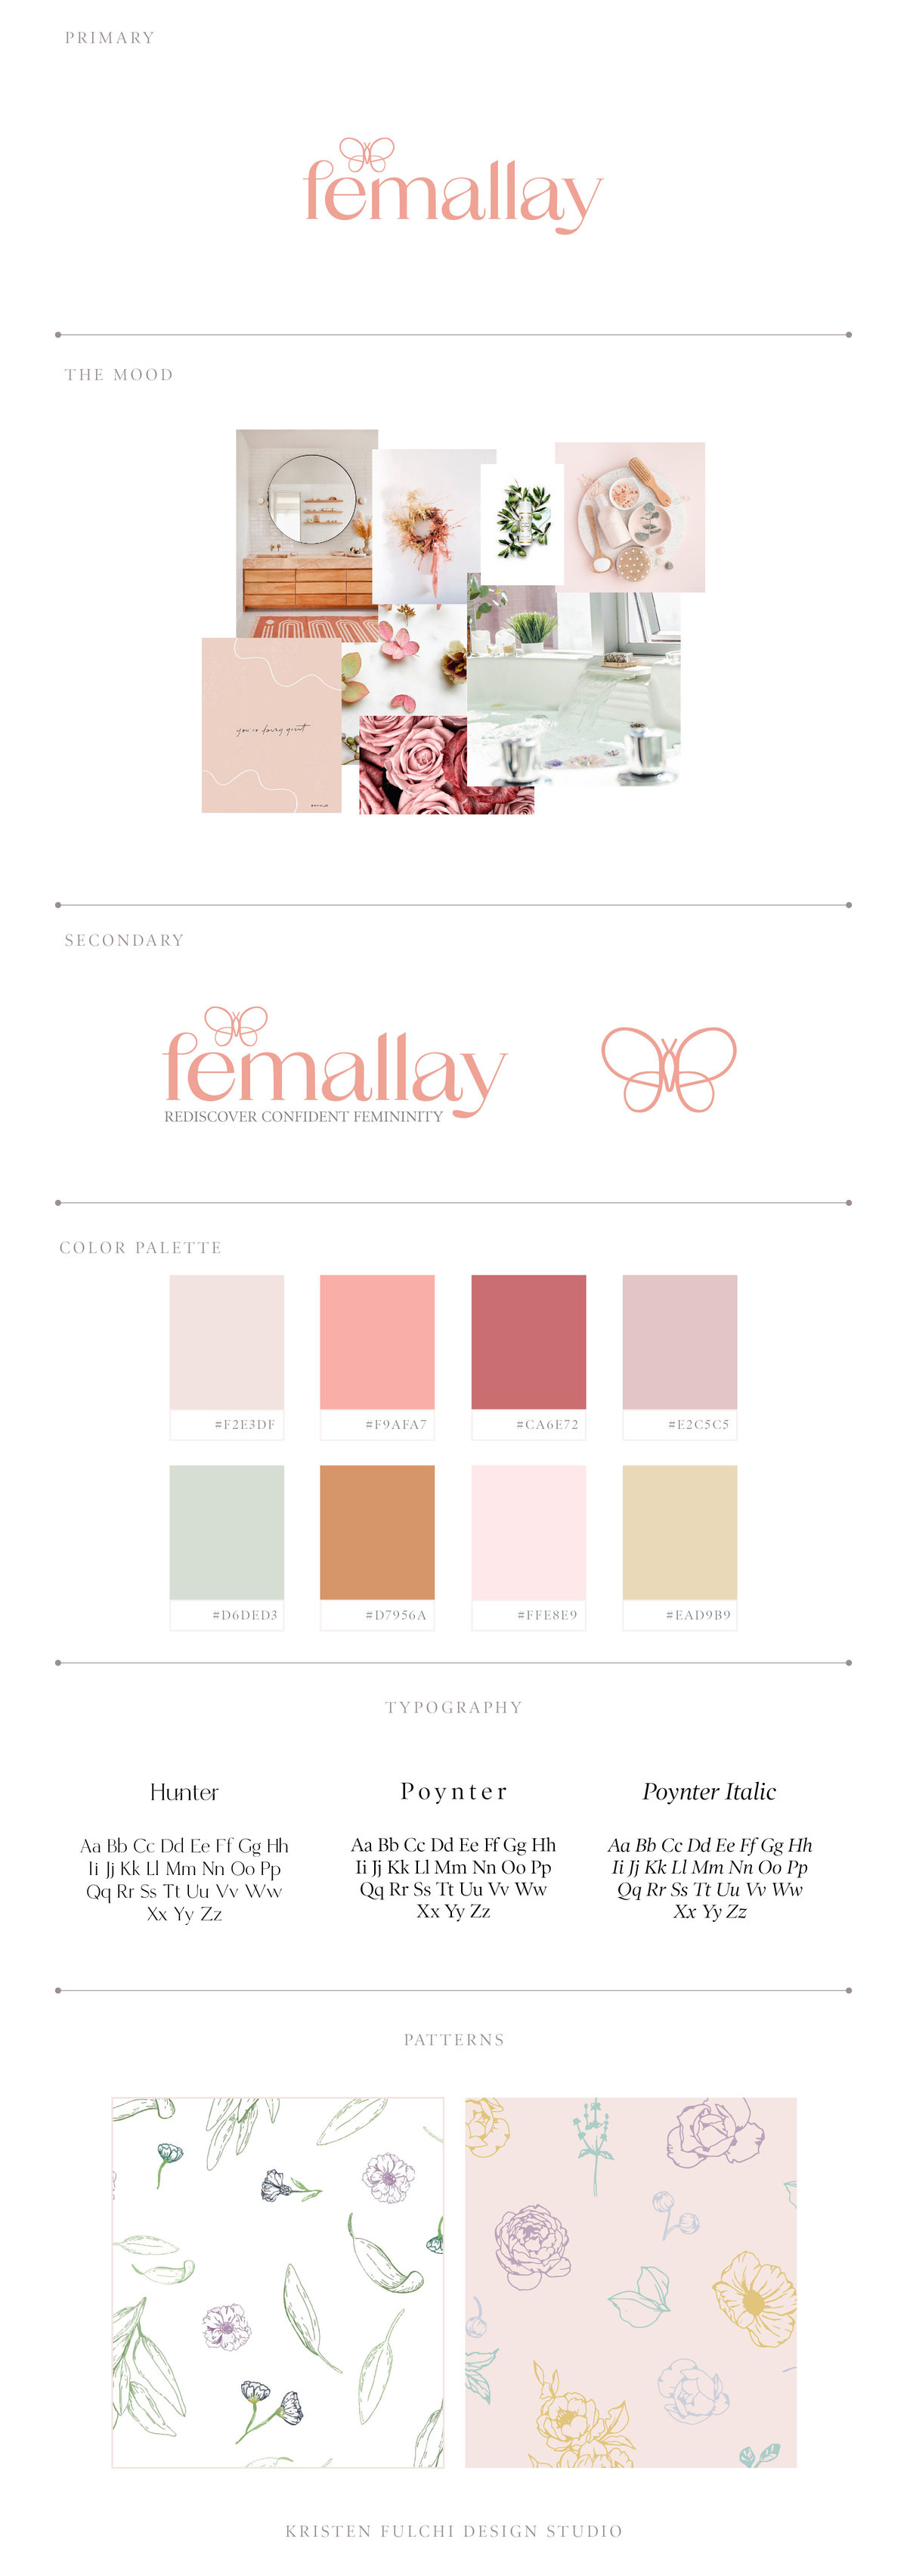 Femallay - Brand Style Board - Updated